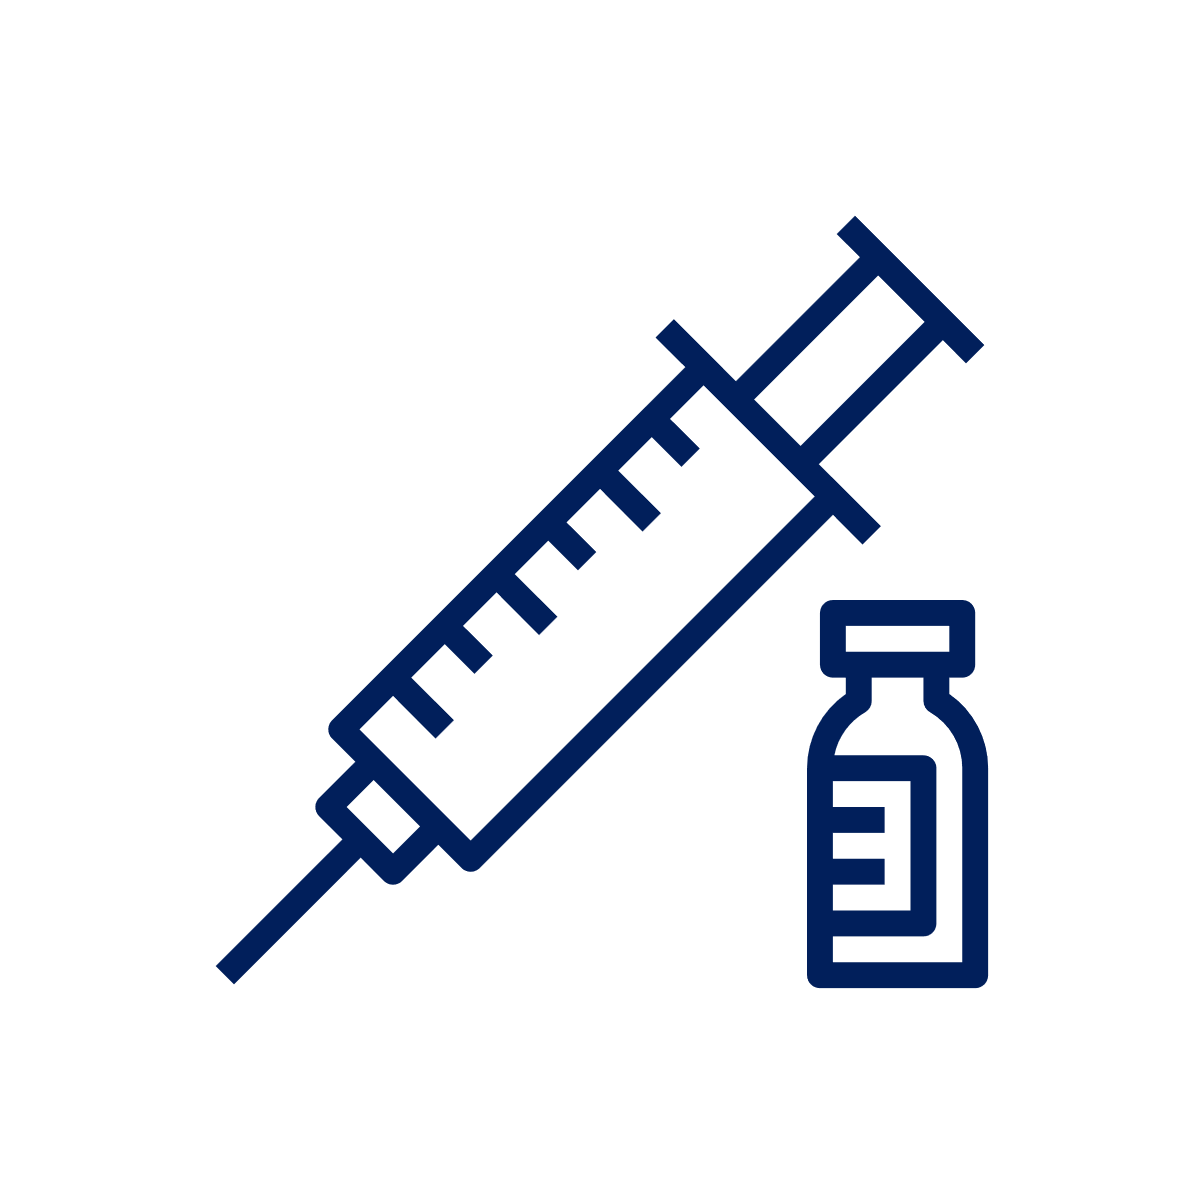 a syringe and vaccine bottle